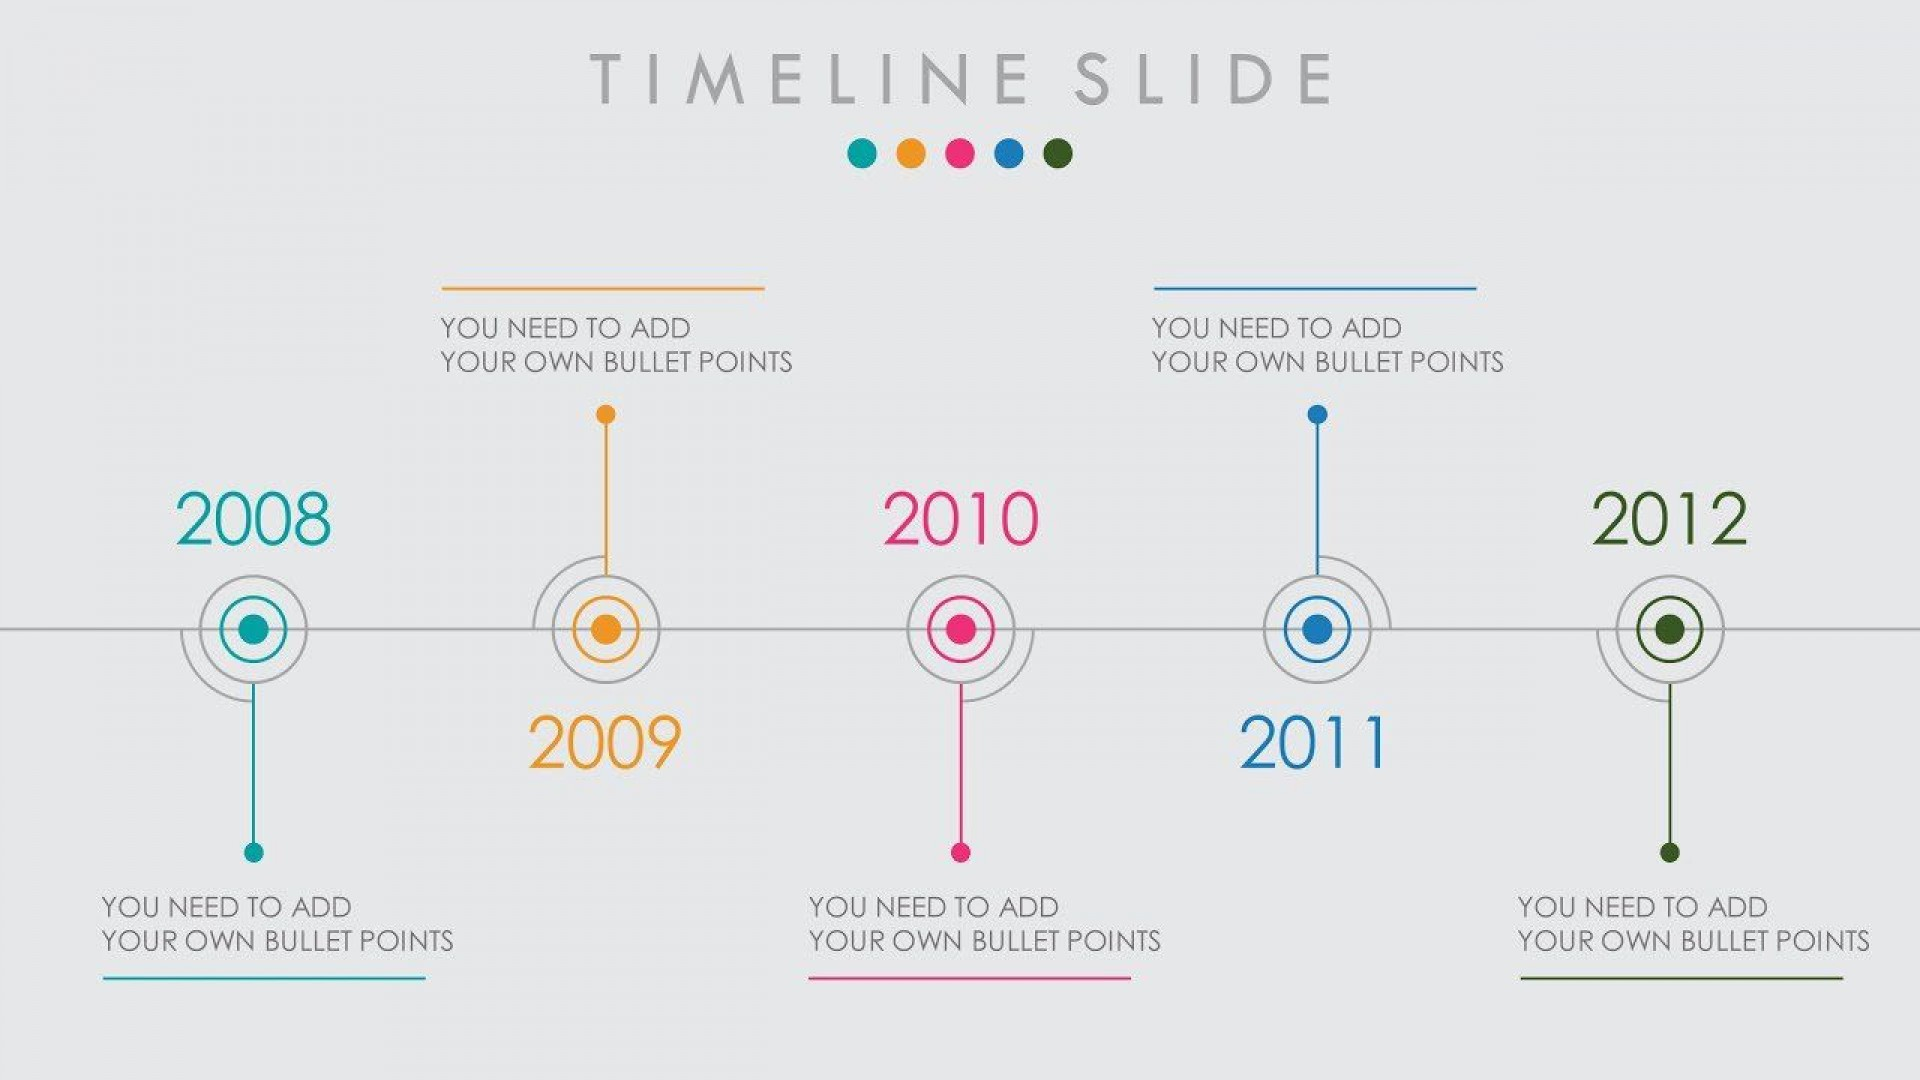 006 Awful Timeline Format For Presentation Example  Graph Template Powerpoint Download1920